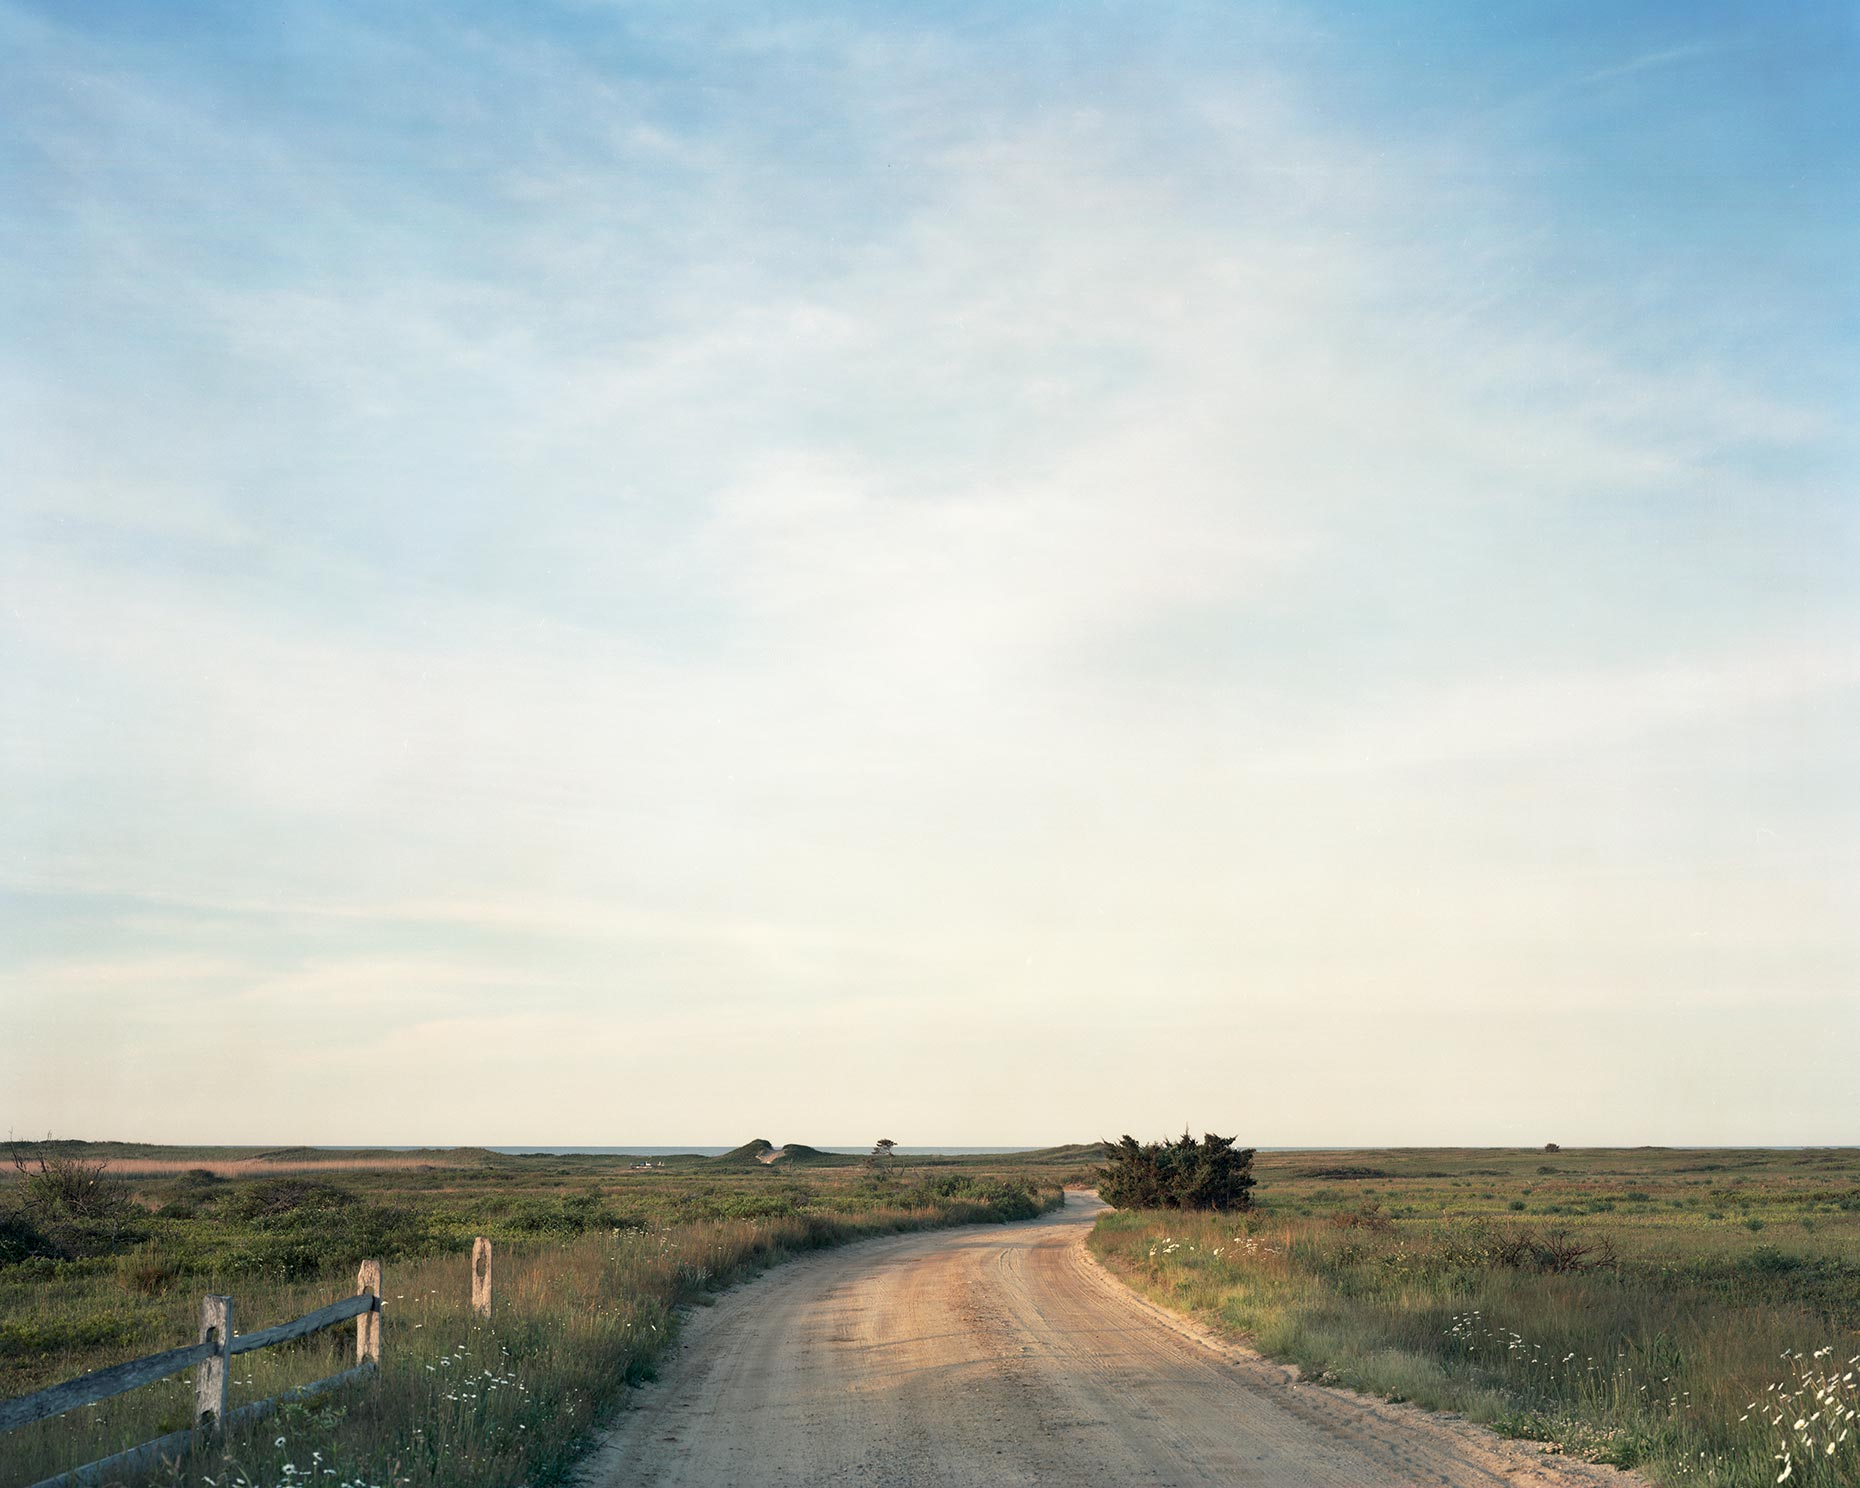 Michael Gaillard  |  Fine Art Photography  |  The Road South